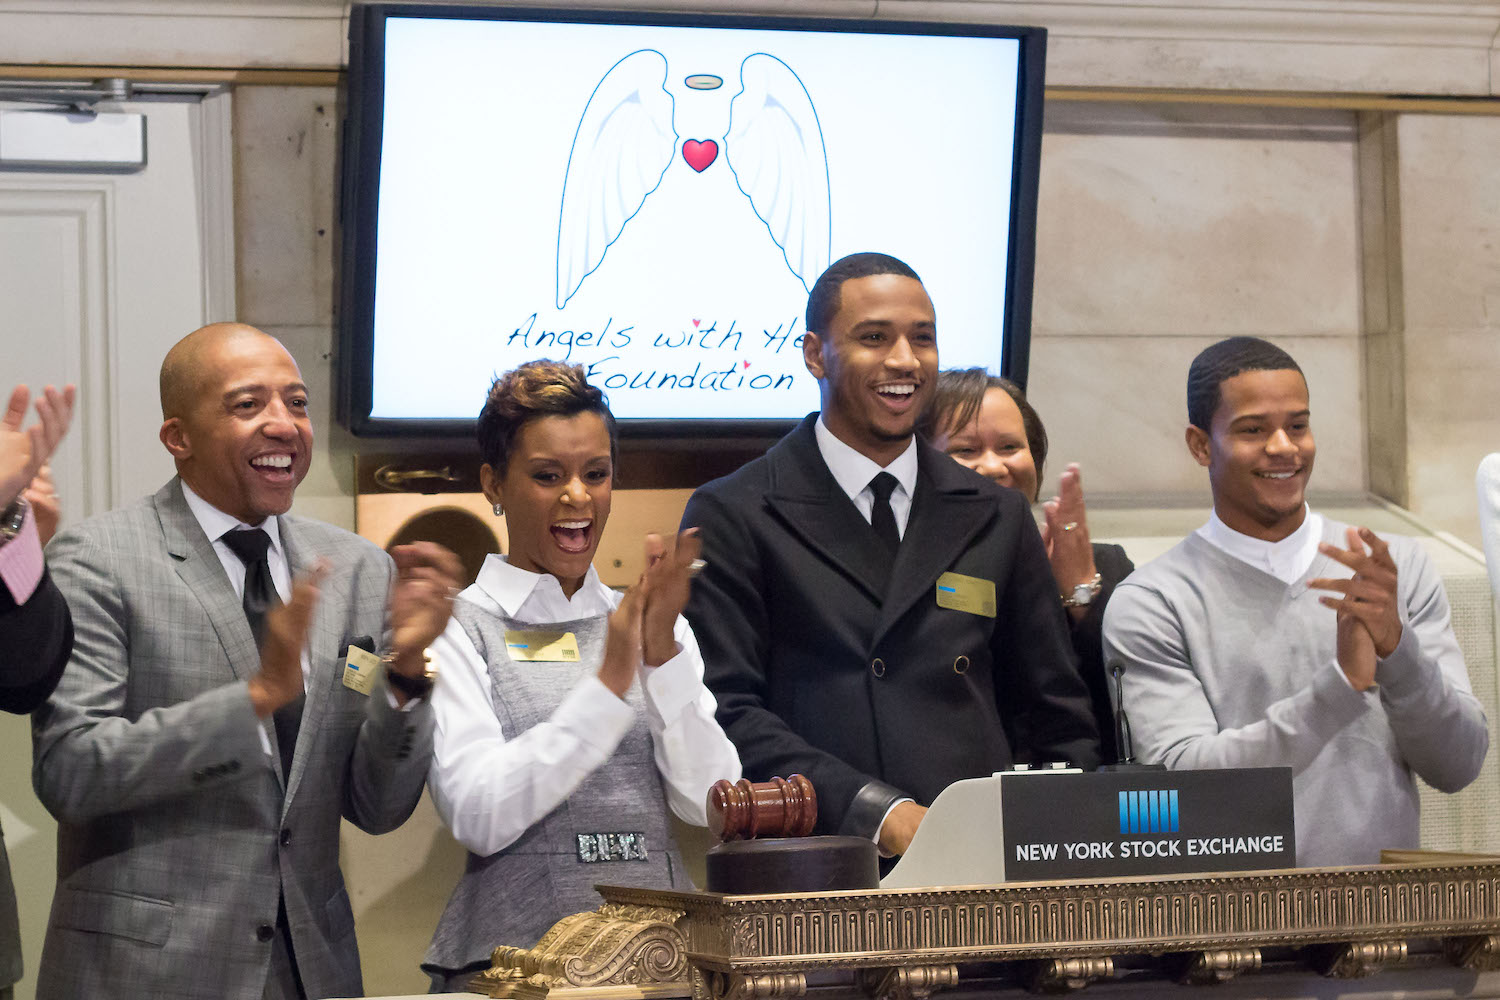 NEW YORK, NY – NOVEMBER 13: Entertainer Trey Songz Rings NYSE Closing Bell to Highlight 30 Acts of Kindness and Angels with Heart Month by ringing the Closing bell at the New York Stock Exchange on November 13, 2014 in New York City. (Photo by Ben Hider/NYSE)